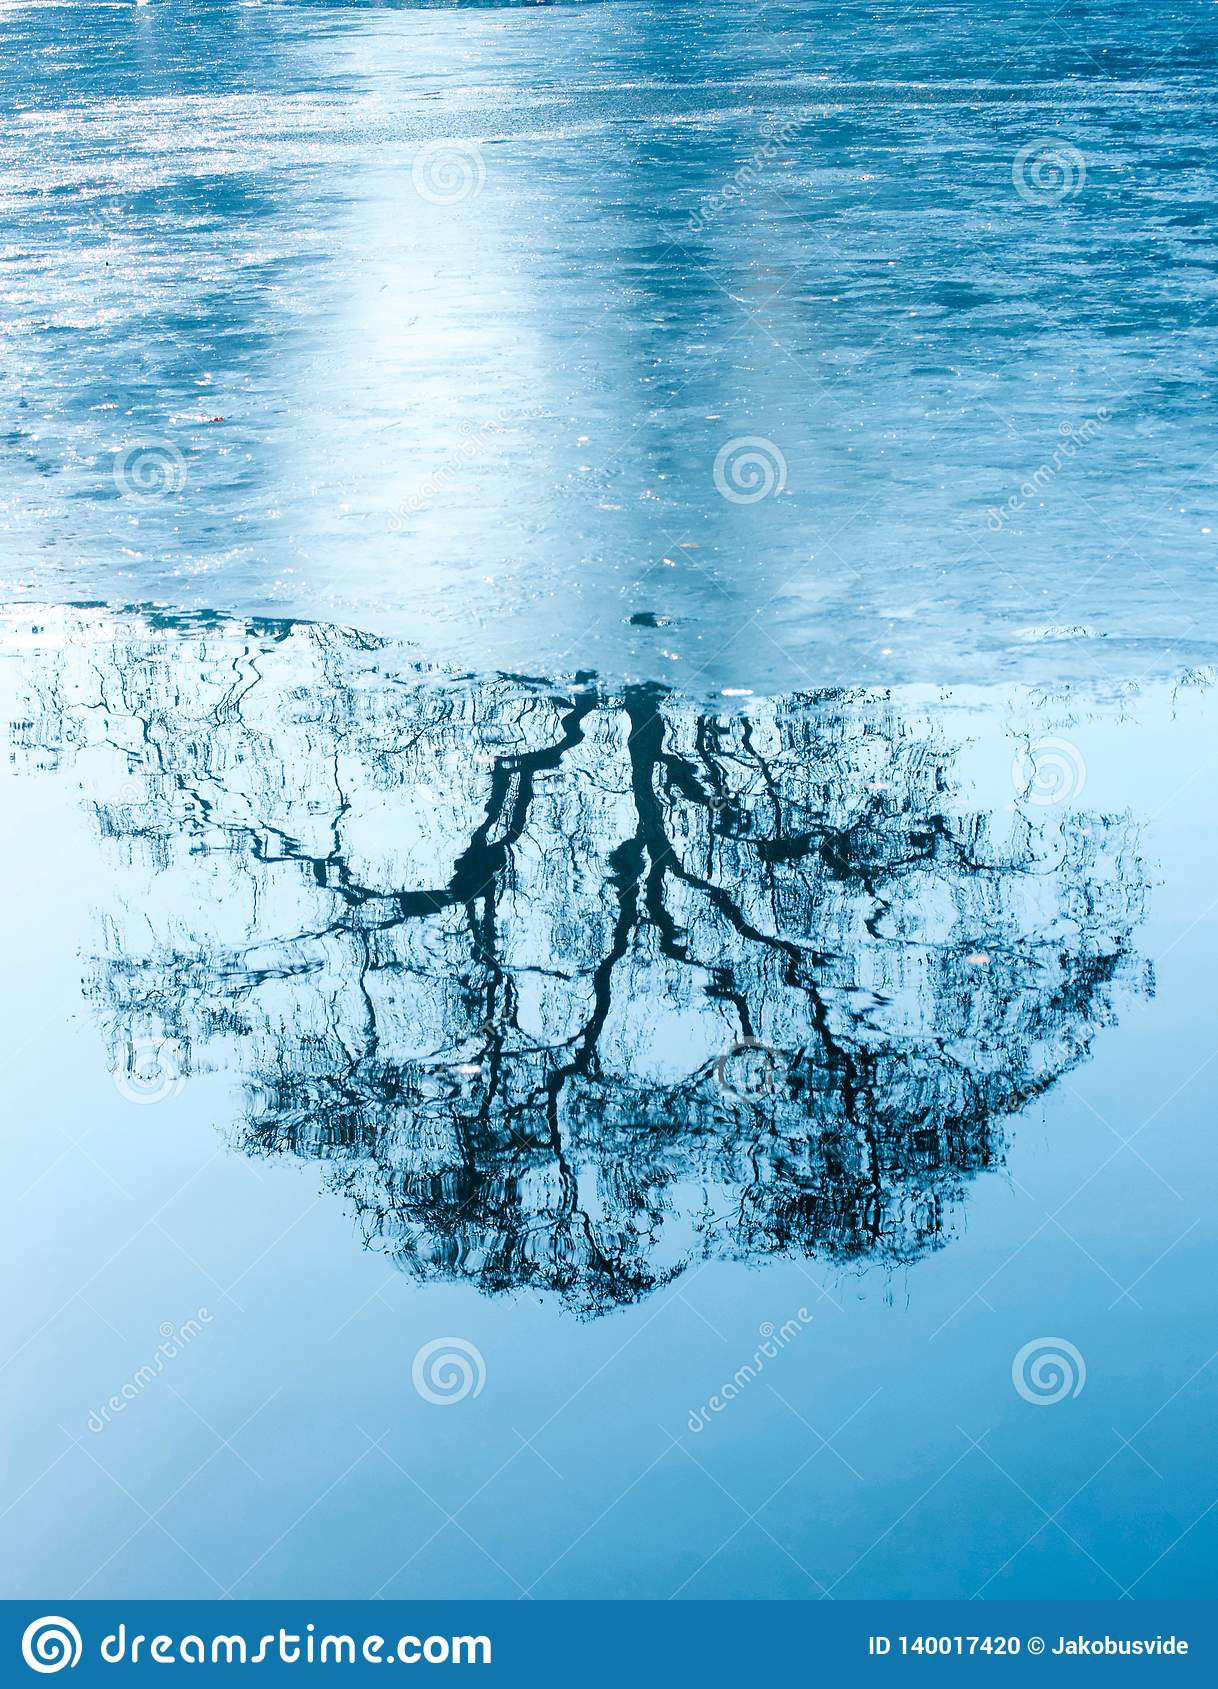 Amazing winter reflections of a tree on a frozen lake